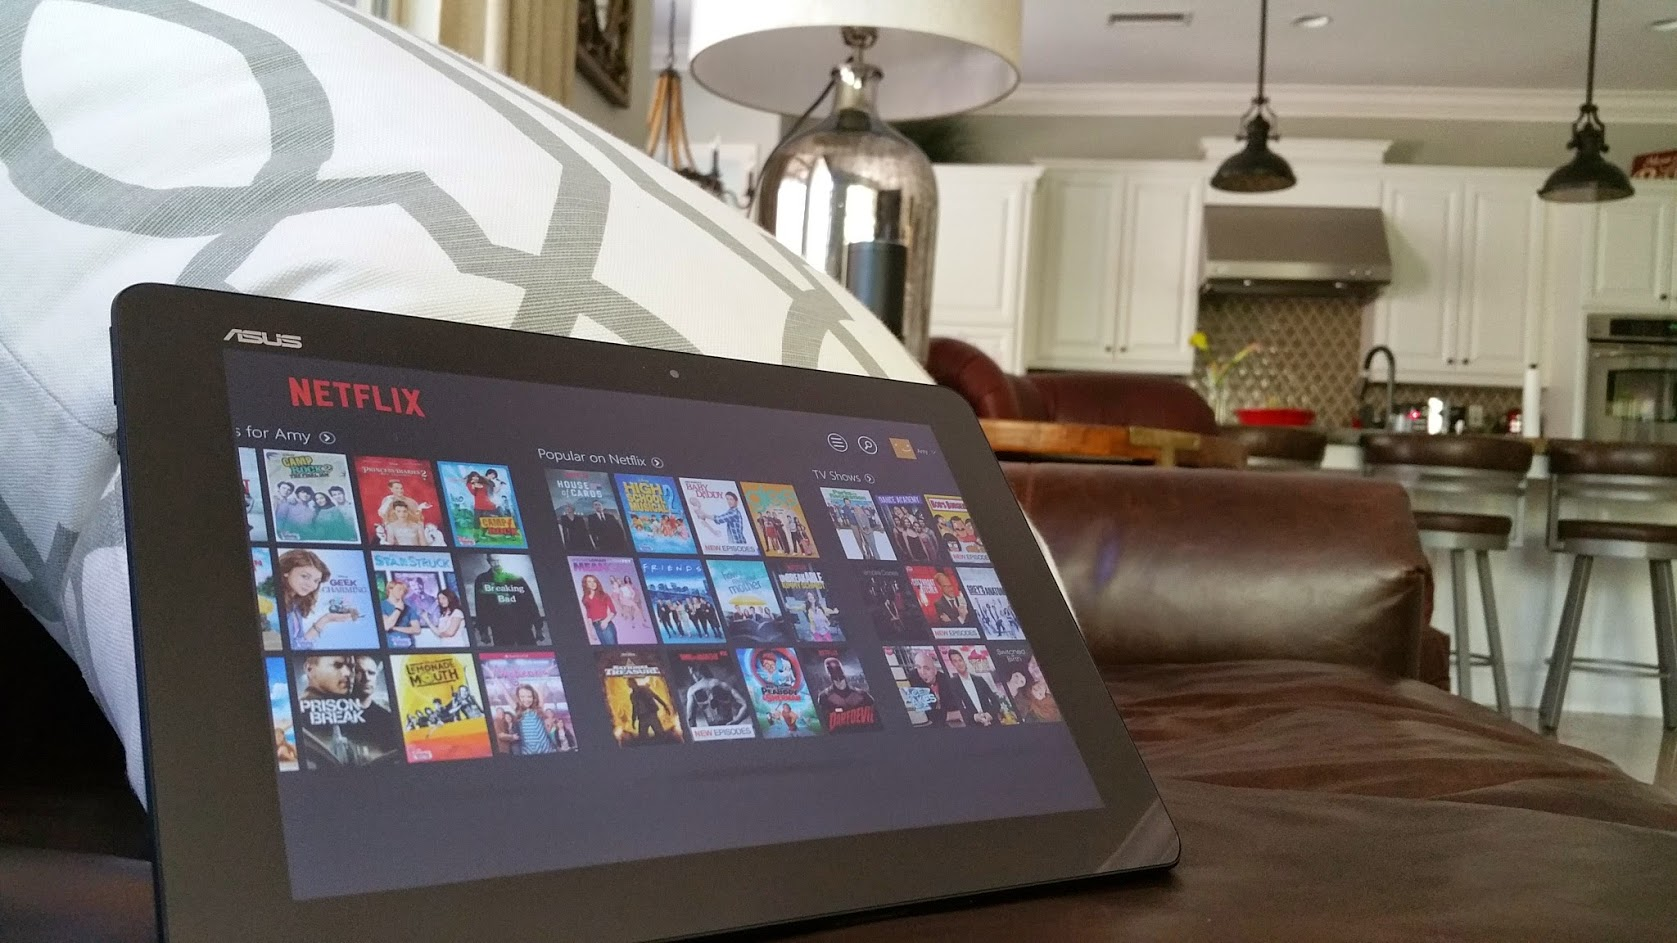 Asus Transformer Book to watch movies in tablet mode